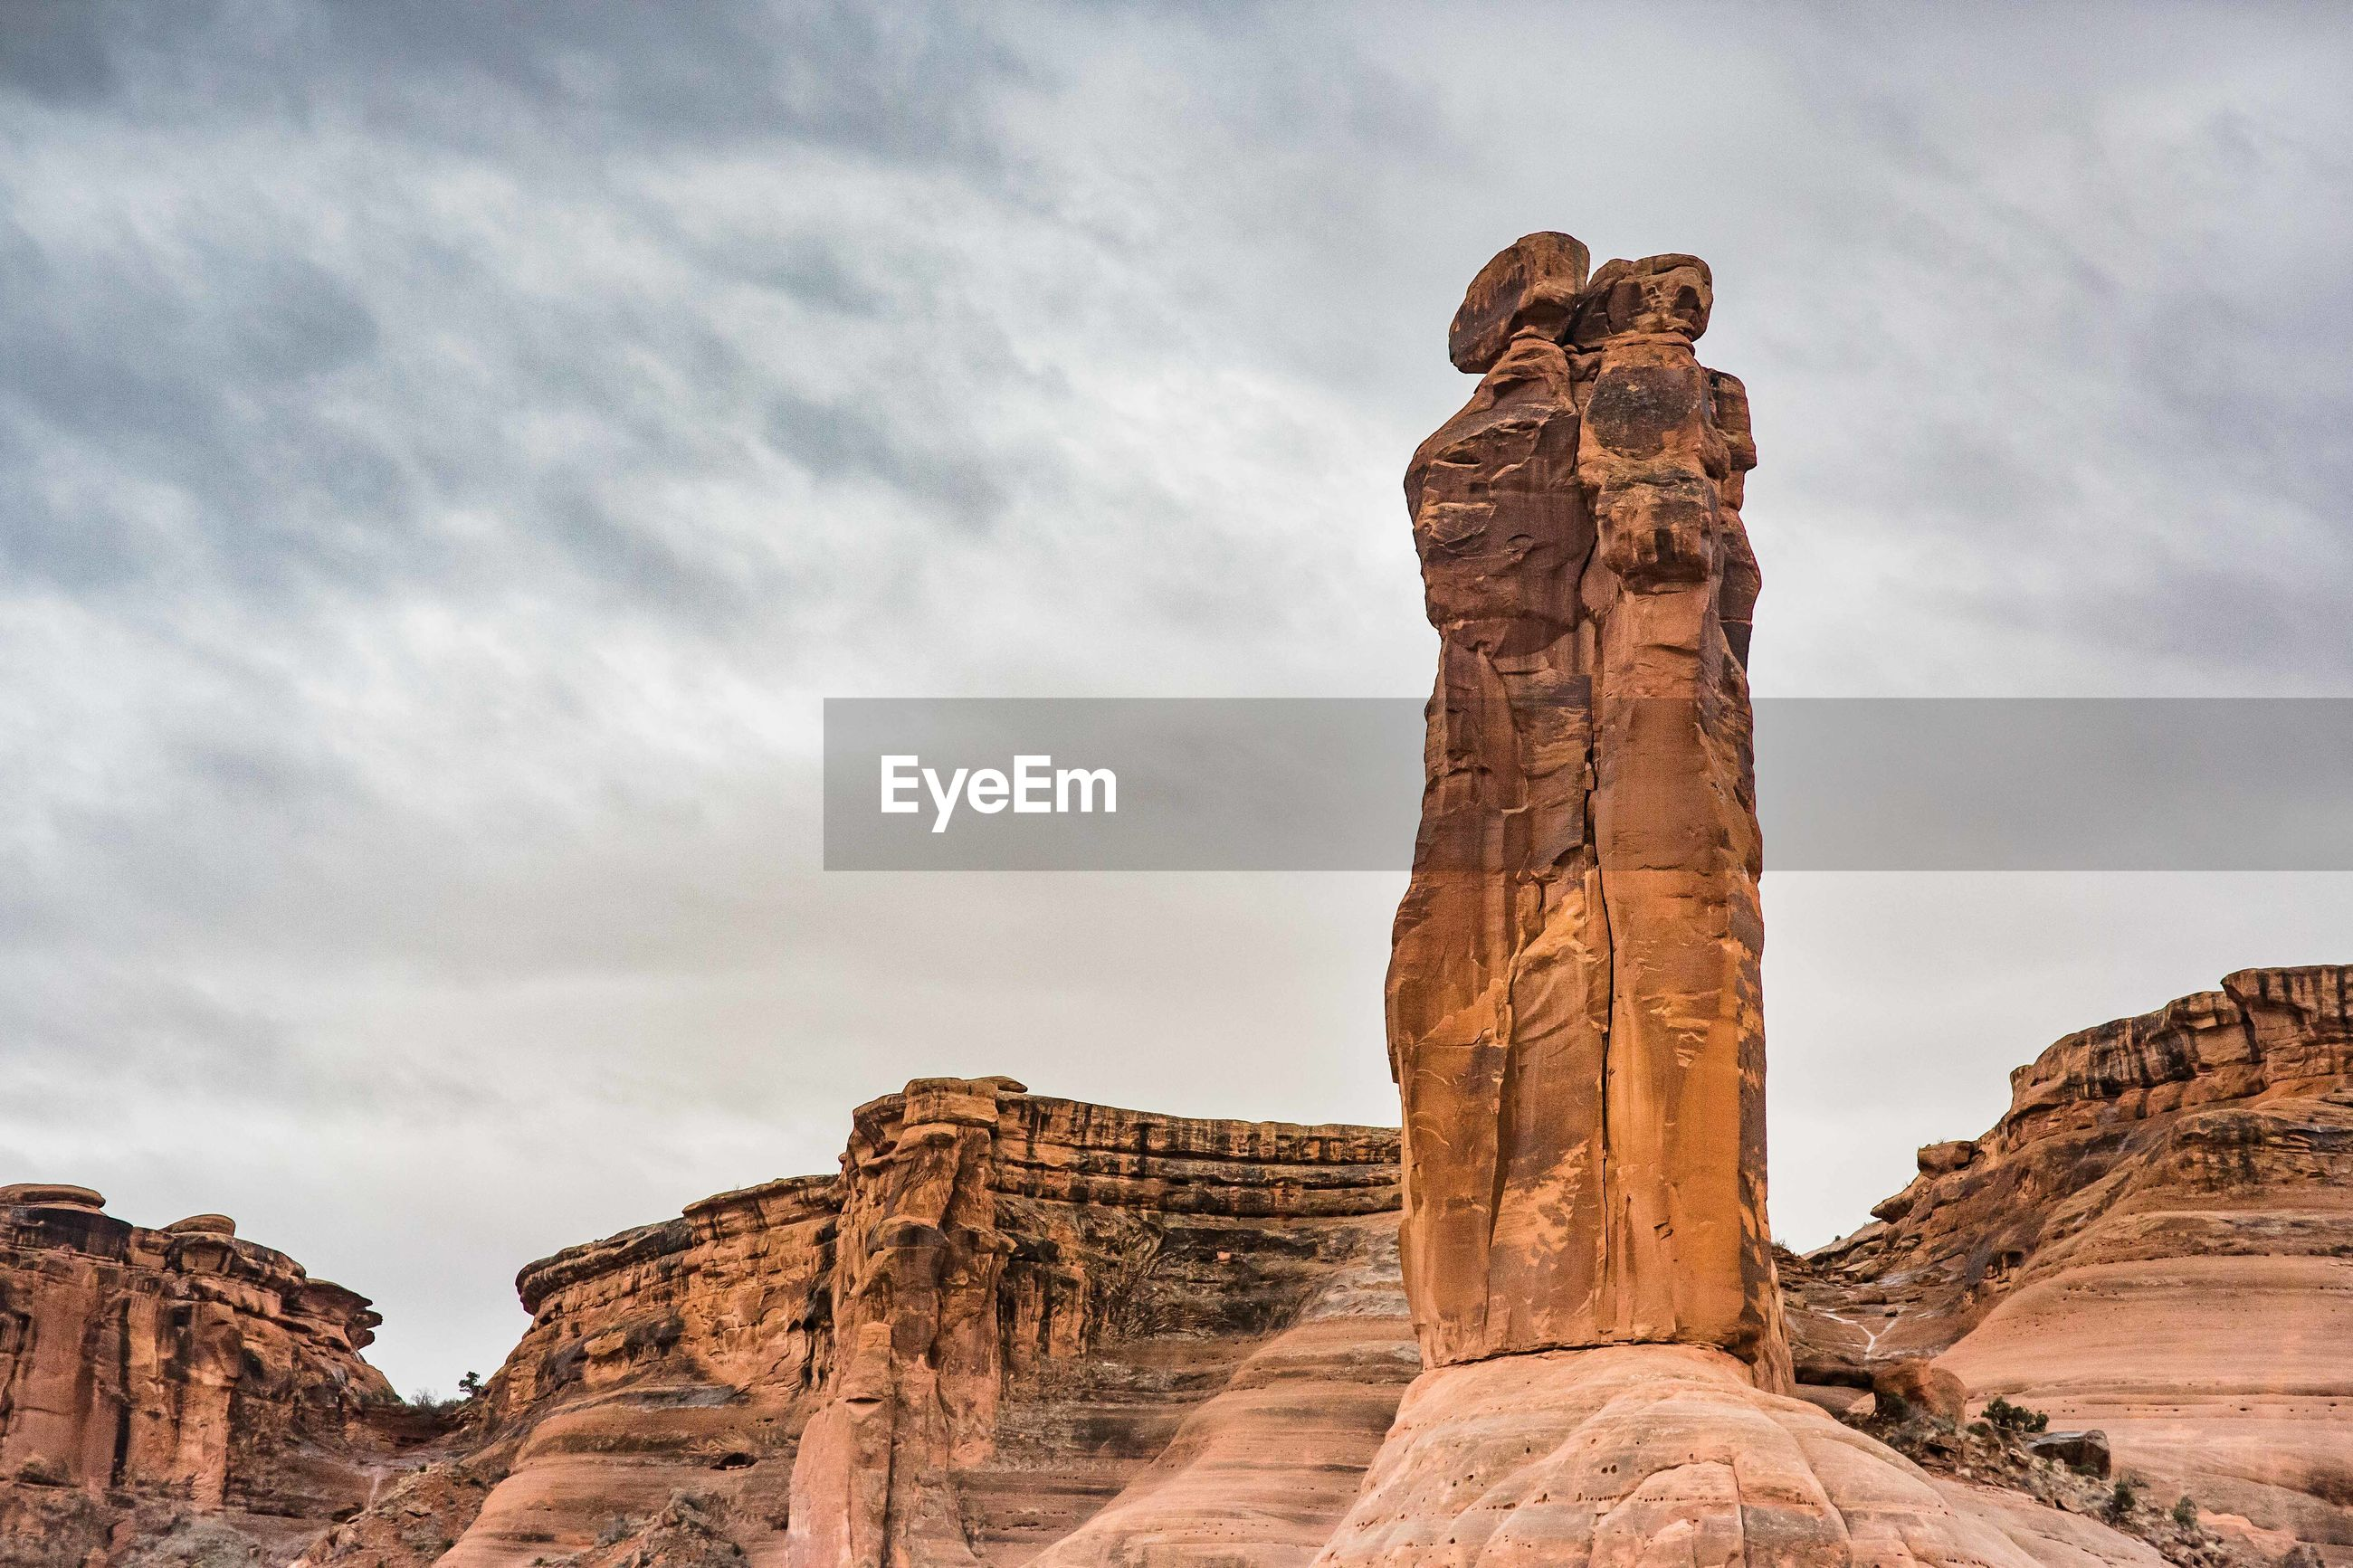 Low angle view of rock formations against sky at arches national park